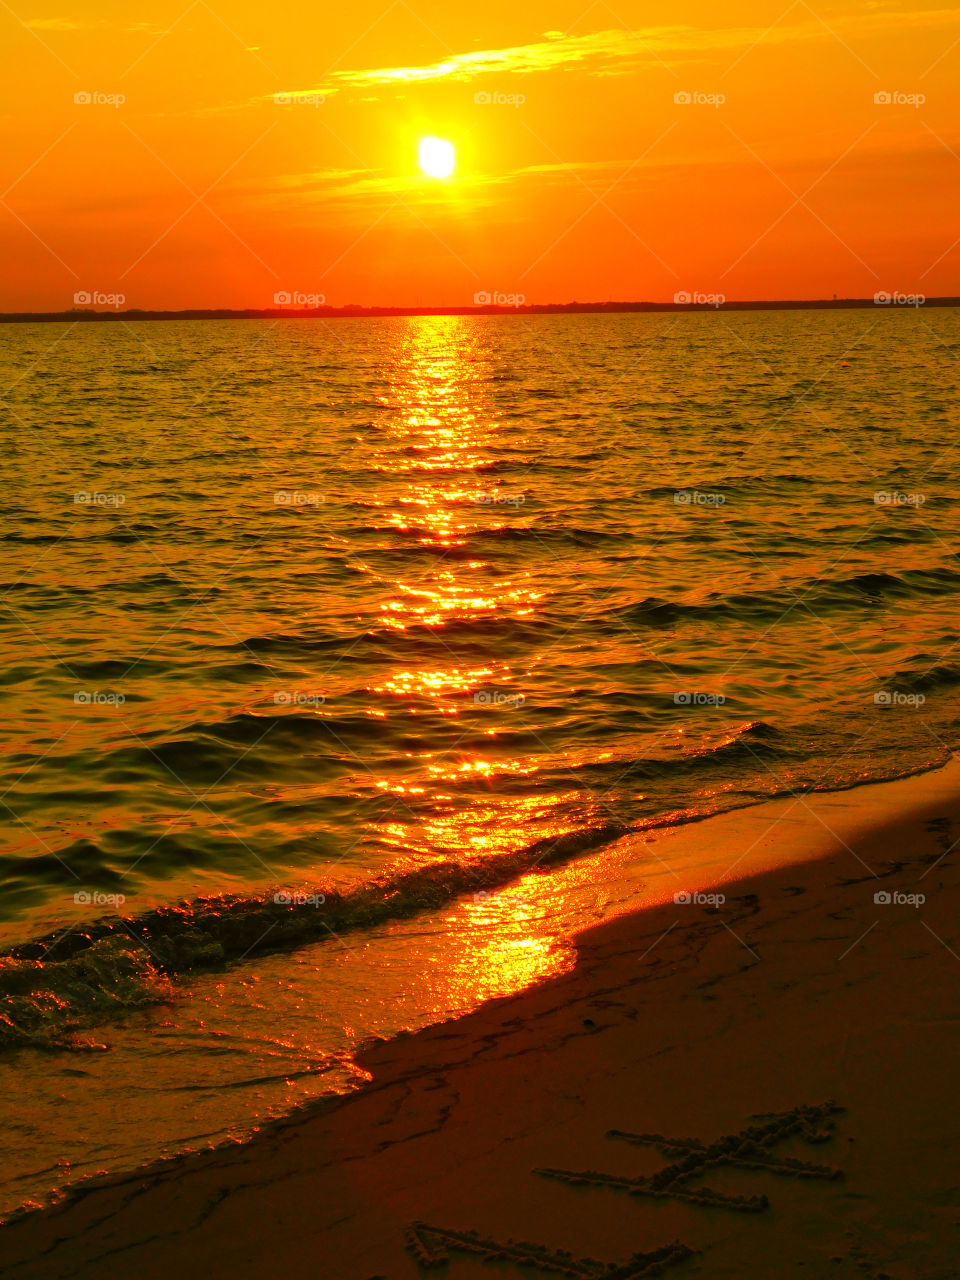 The sky was filled with the most brilliant orange complimented perfectly with hues of gold, yellow, red and crimson. An orange haze had casted over the water, reflecting off every wave.  Finally,the sun disappears along with the shine. I can only wait to see another magical moment of beauty and warmth! I can only wait for another sunset! Enjoy!